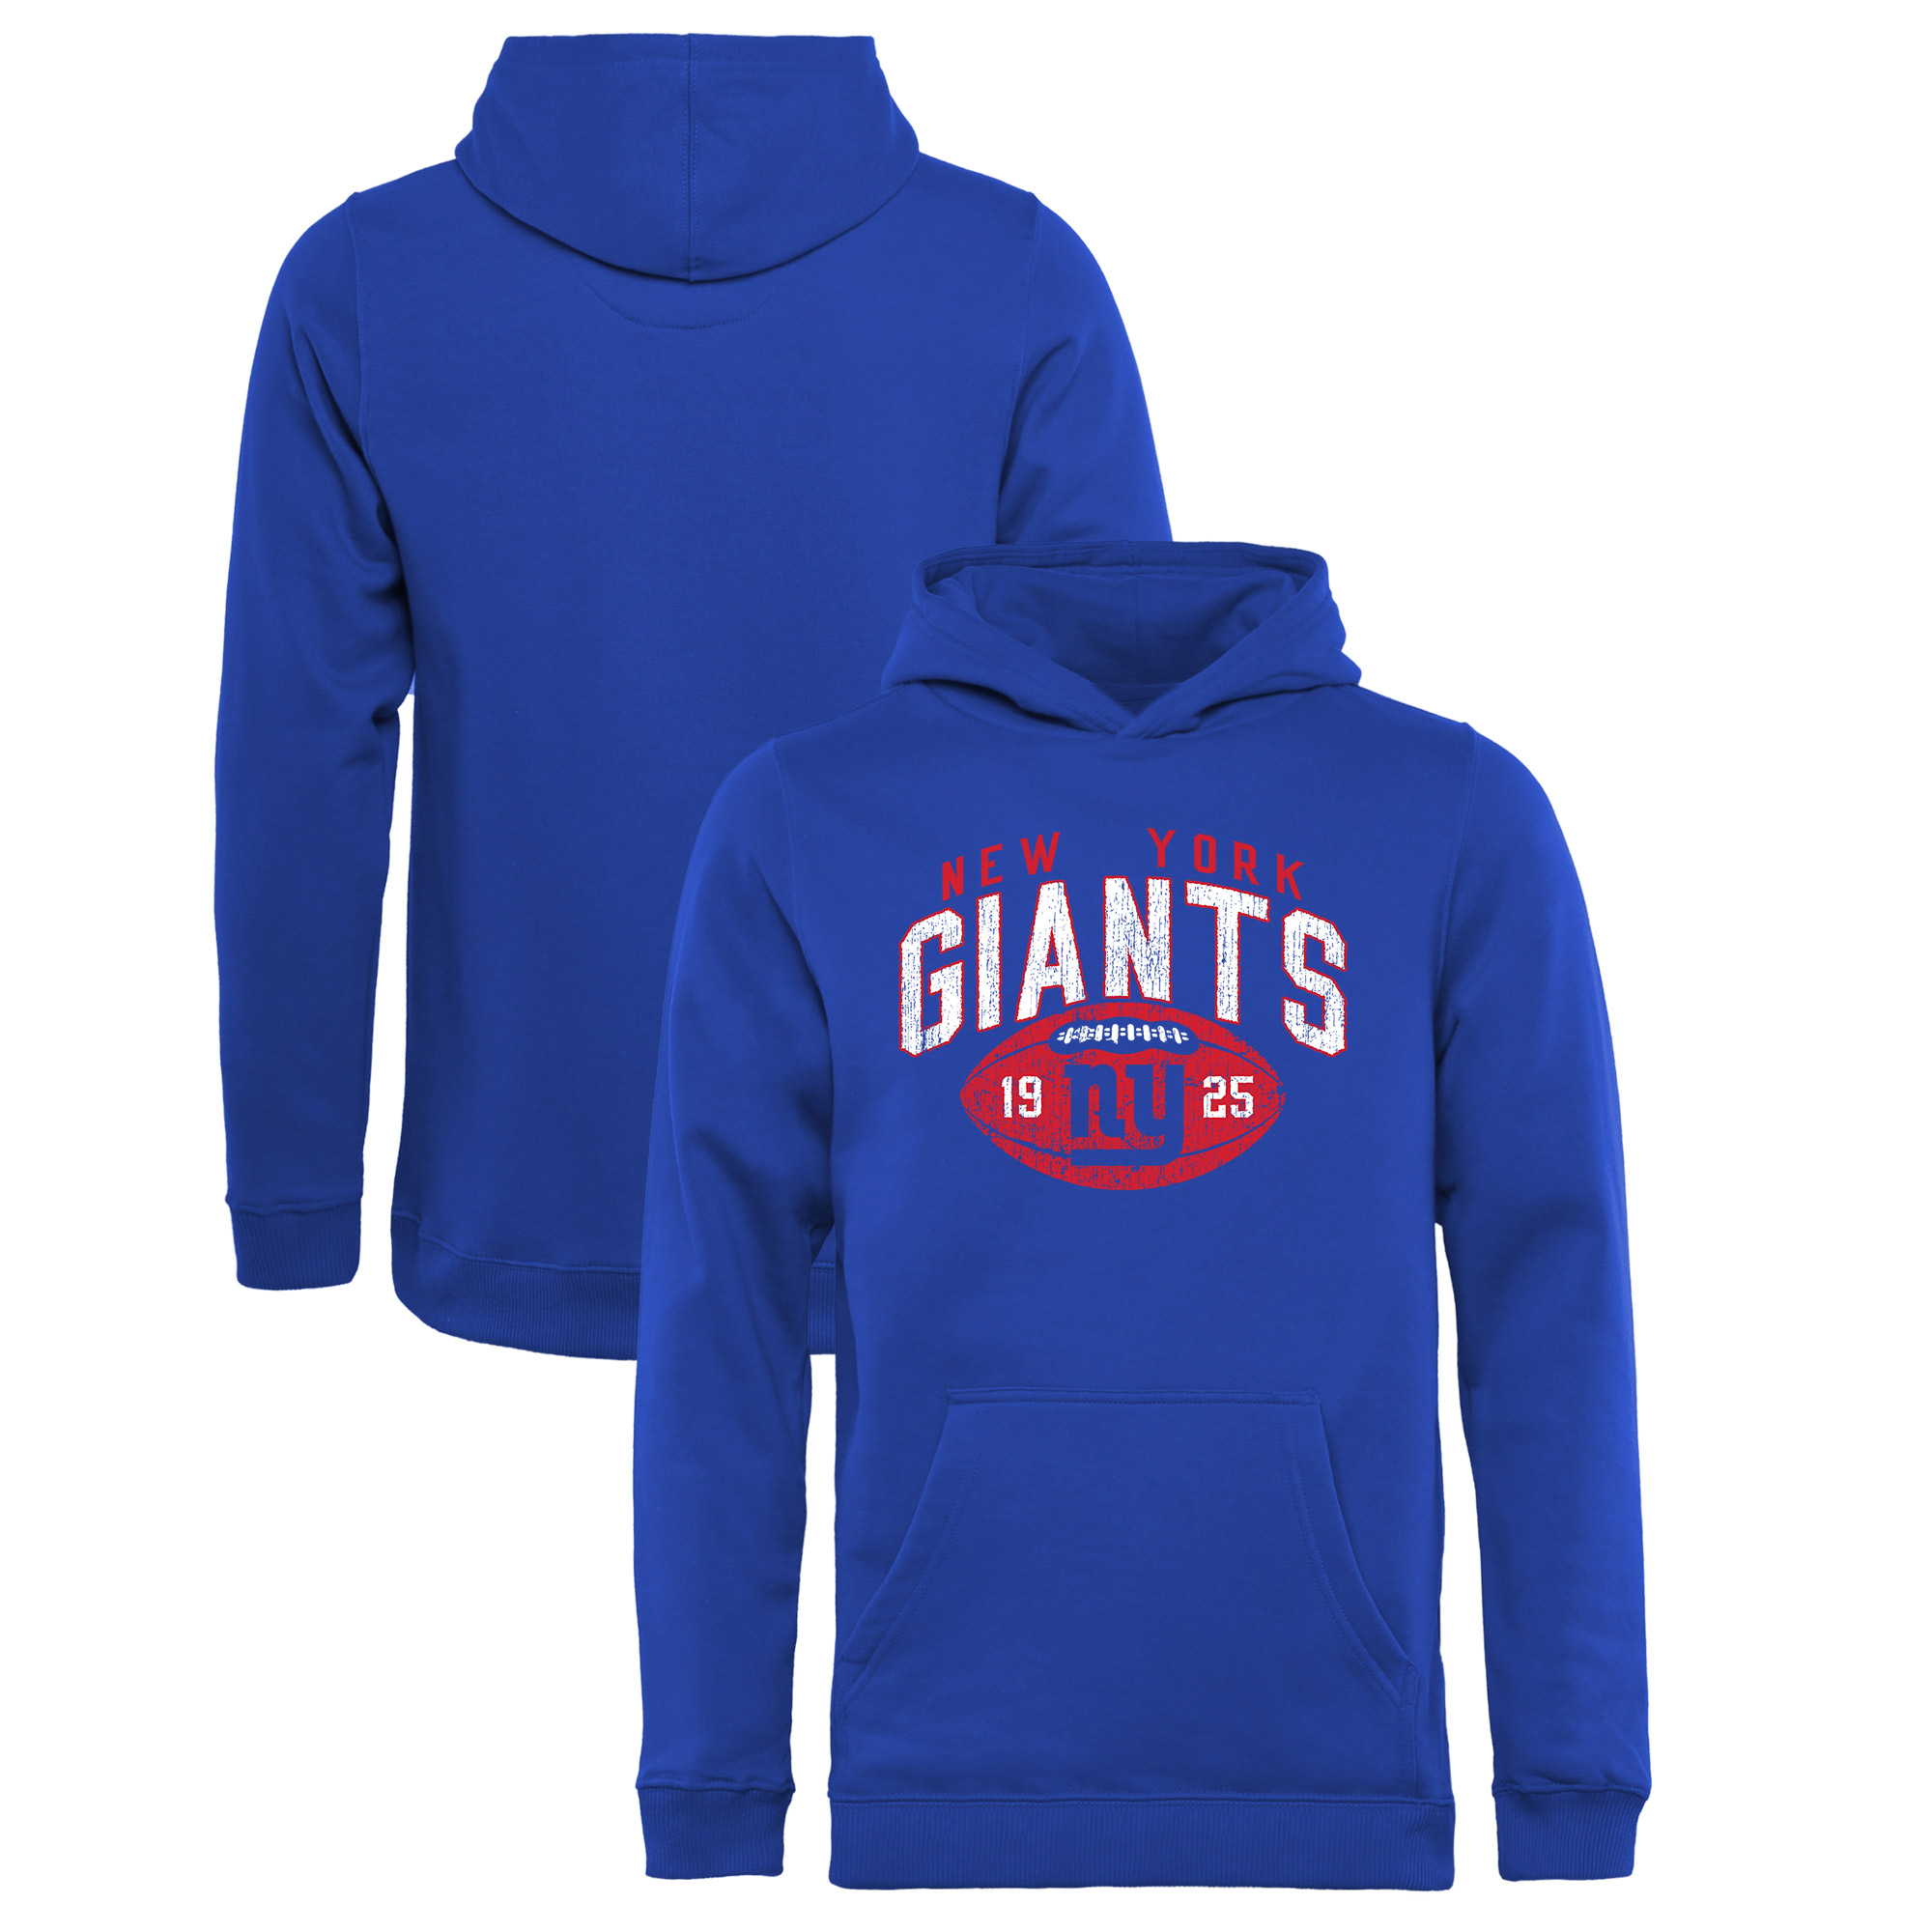 New York Giants NFL Pro Line by Fanatics Branded Youth Throwback Collection Coin Toss Pullover Hoodie - Royal